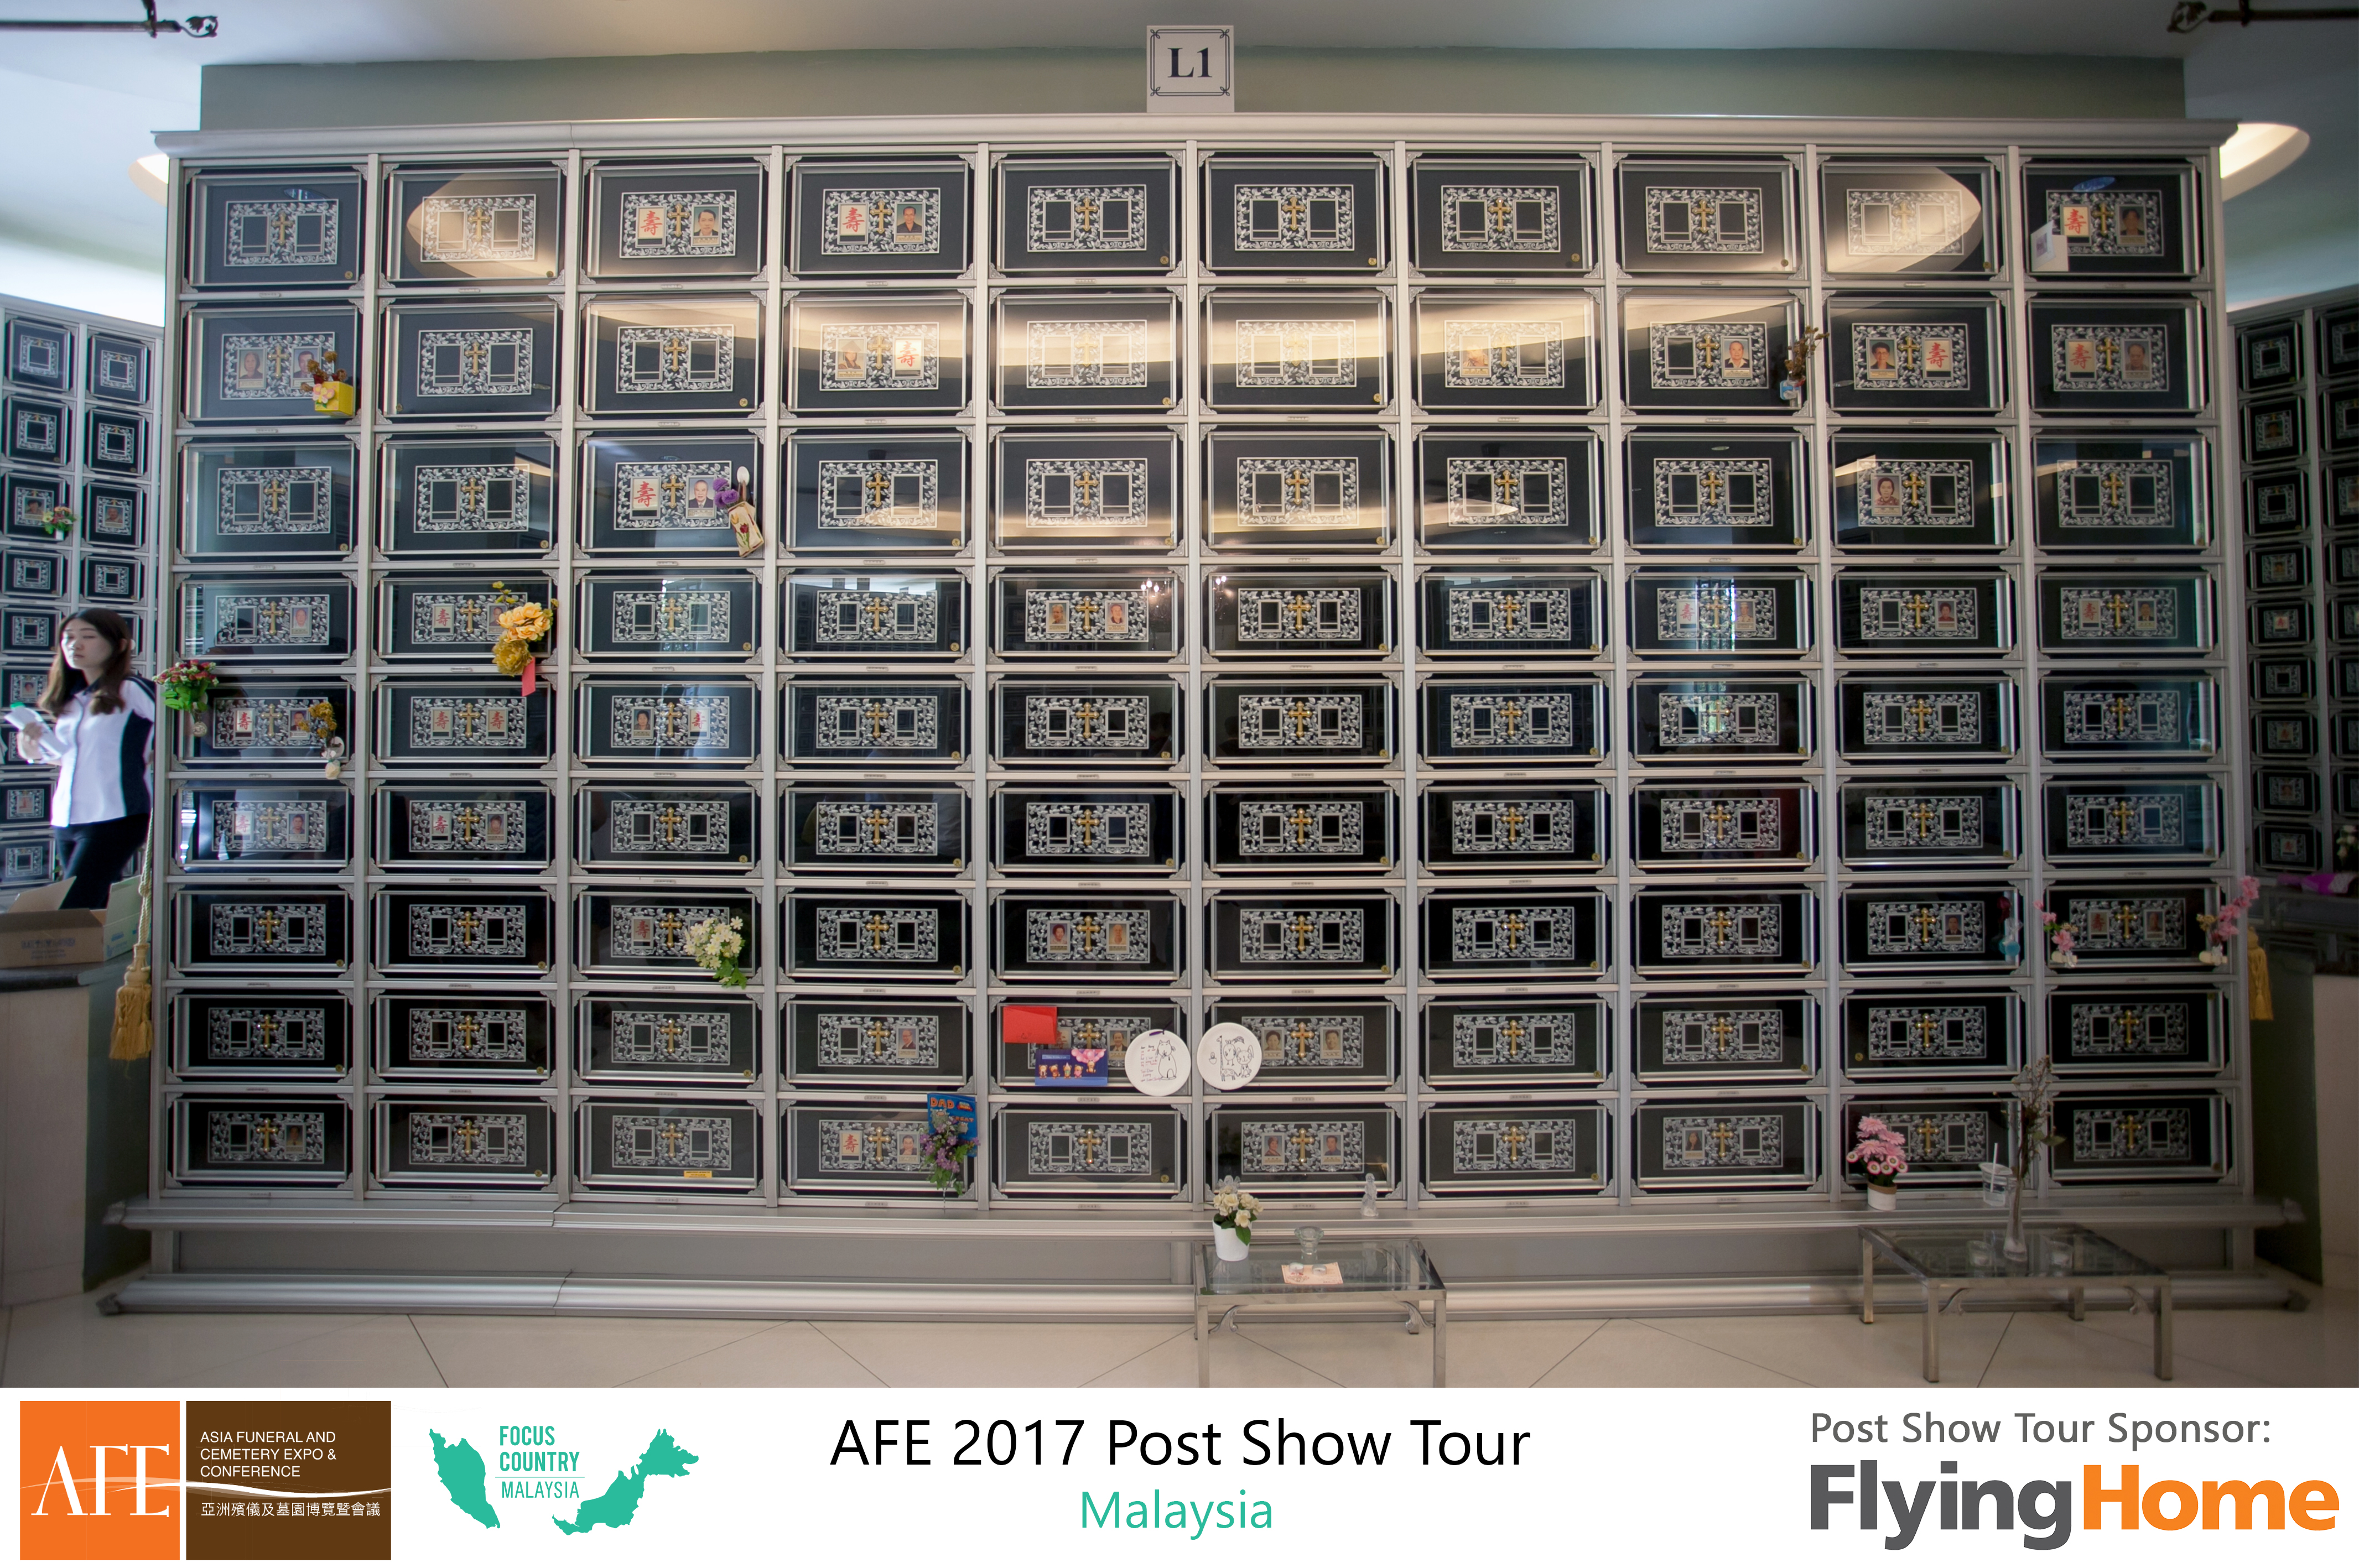 AFE Post Show Tour 2017 Day 2 - 76